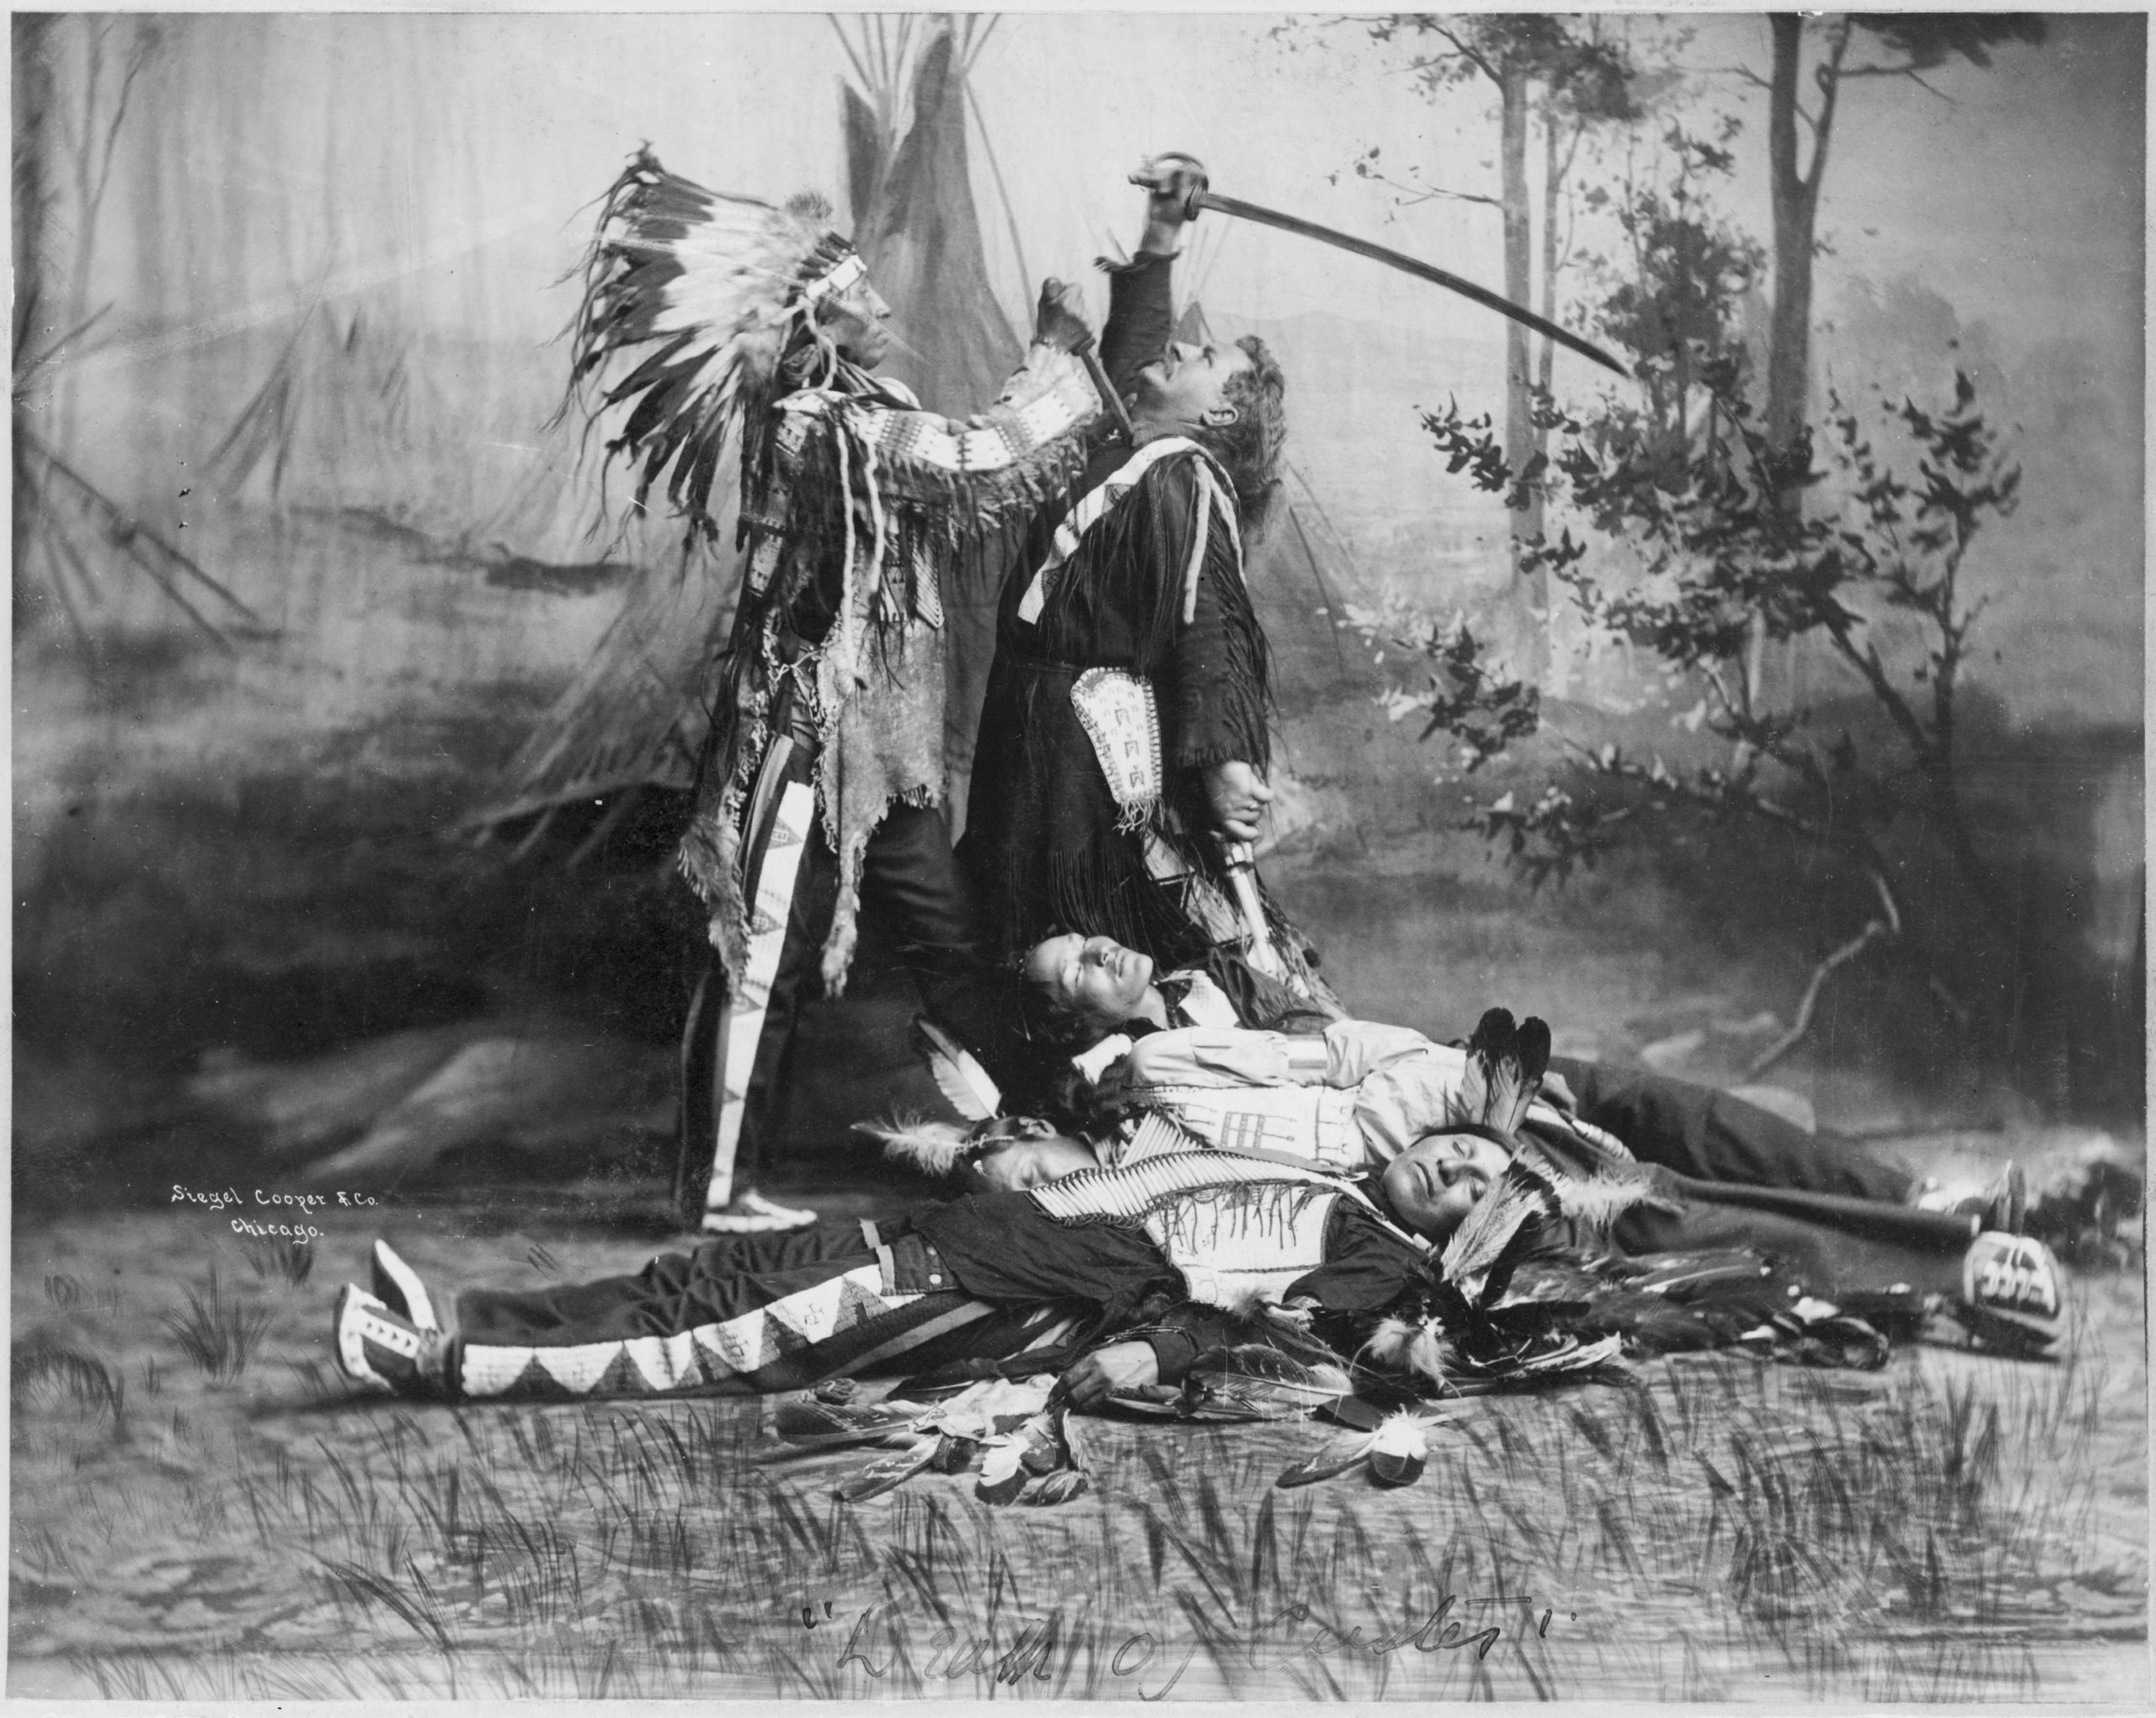 Death of Custer scene by Pawnee Bill's Wild West Show